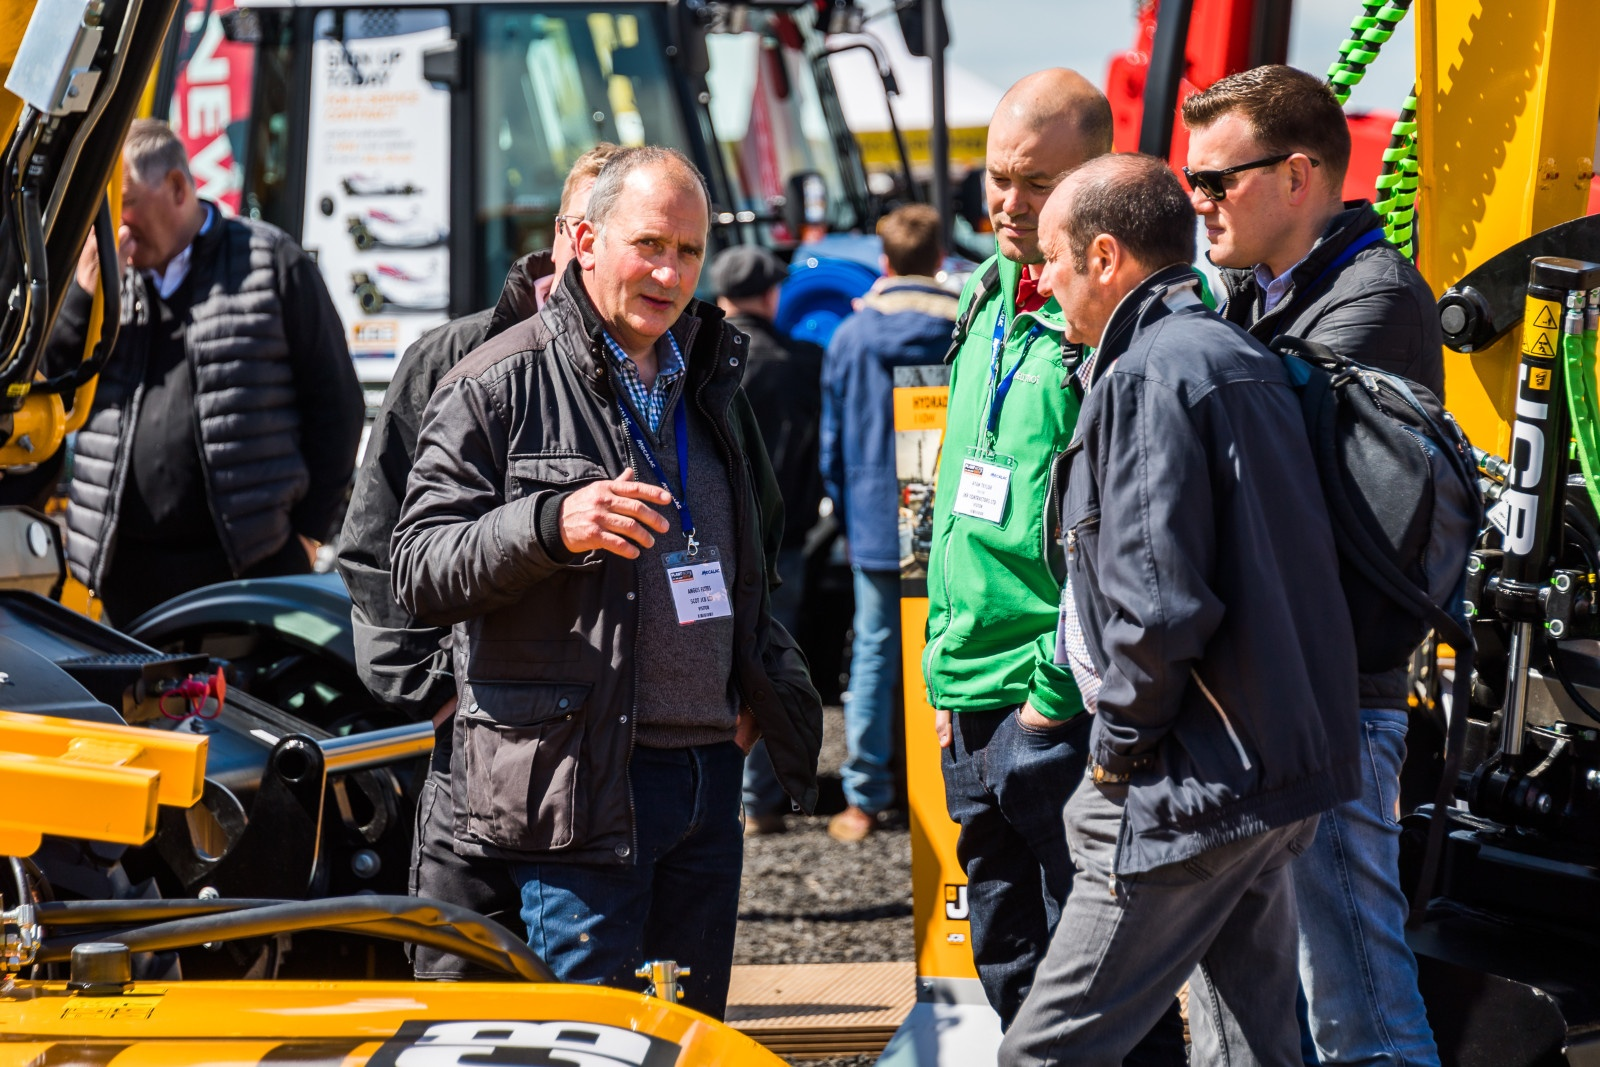 RAILWORX to join with PLANTWORX at East of England Arena.